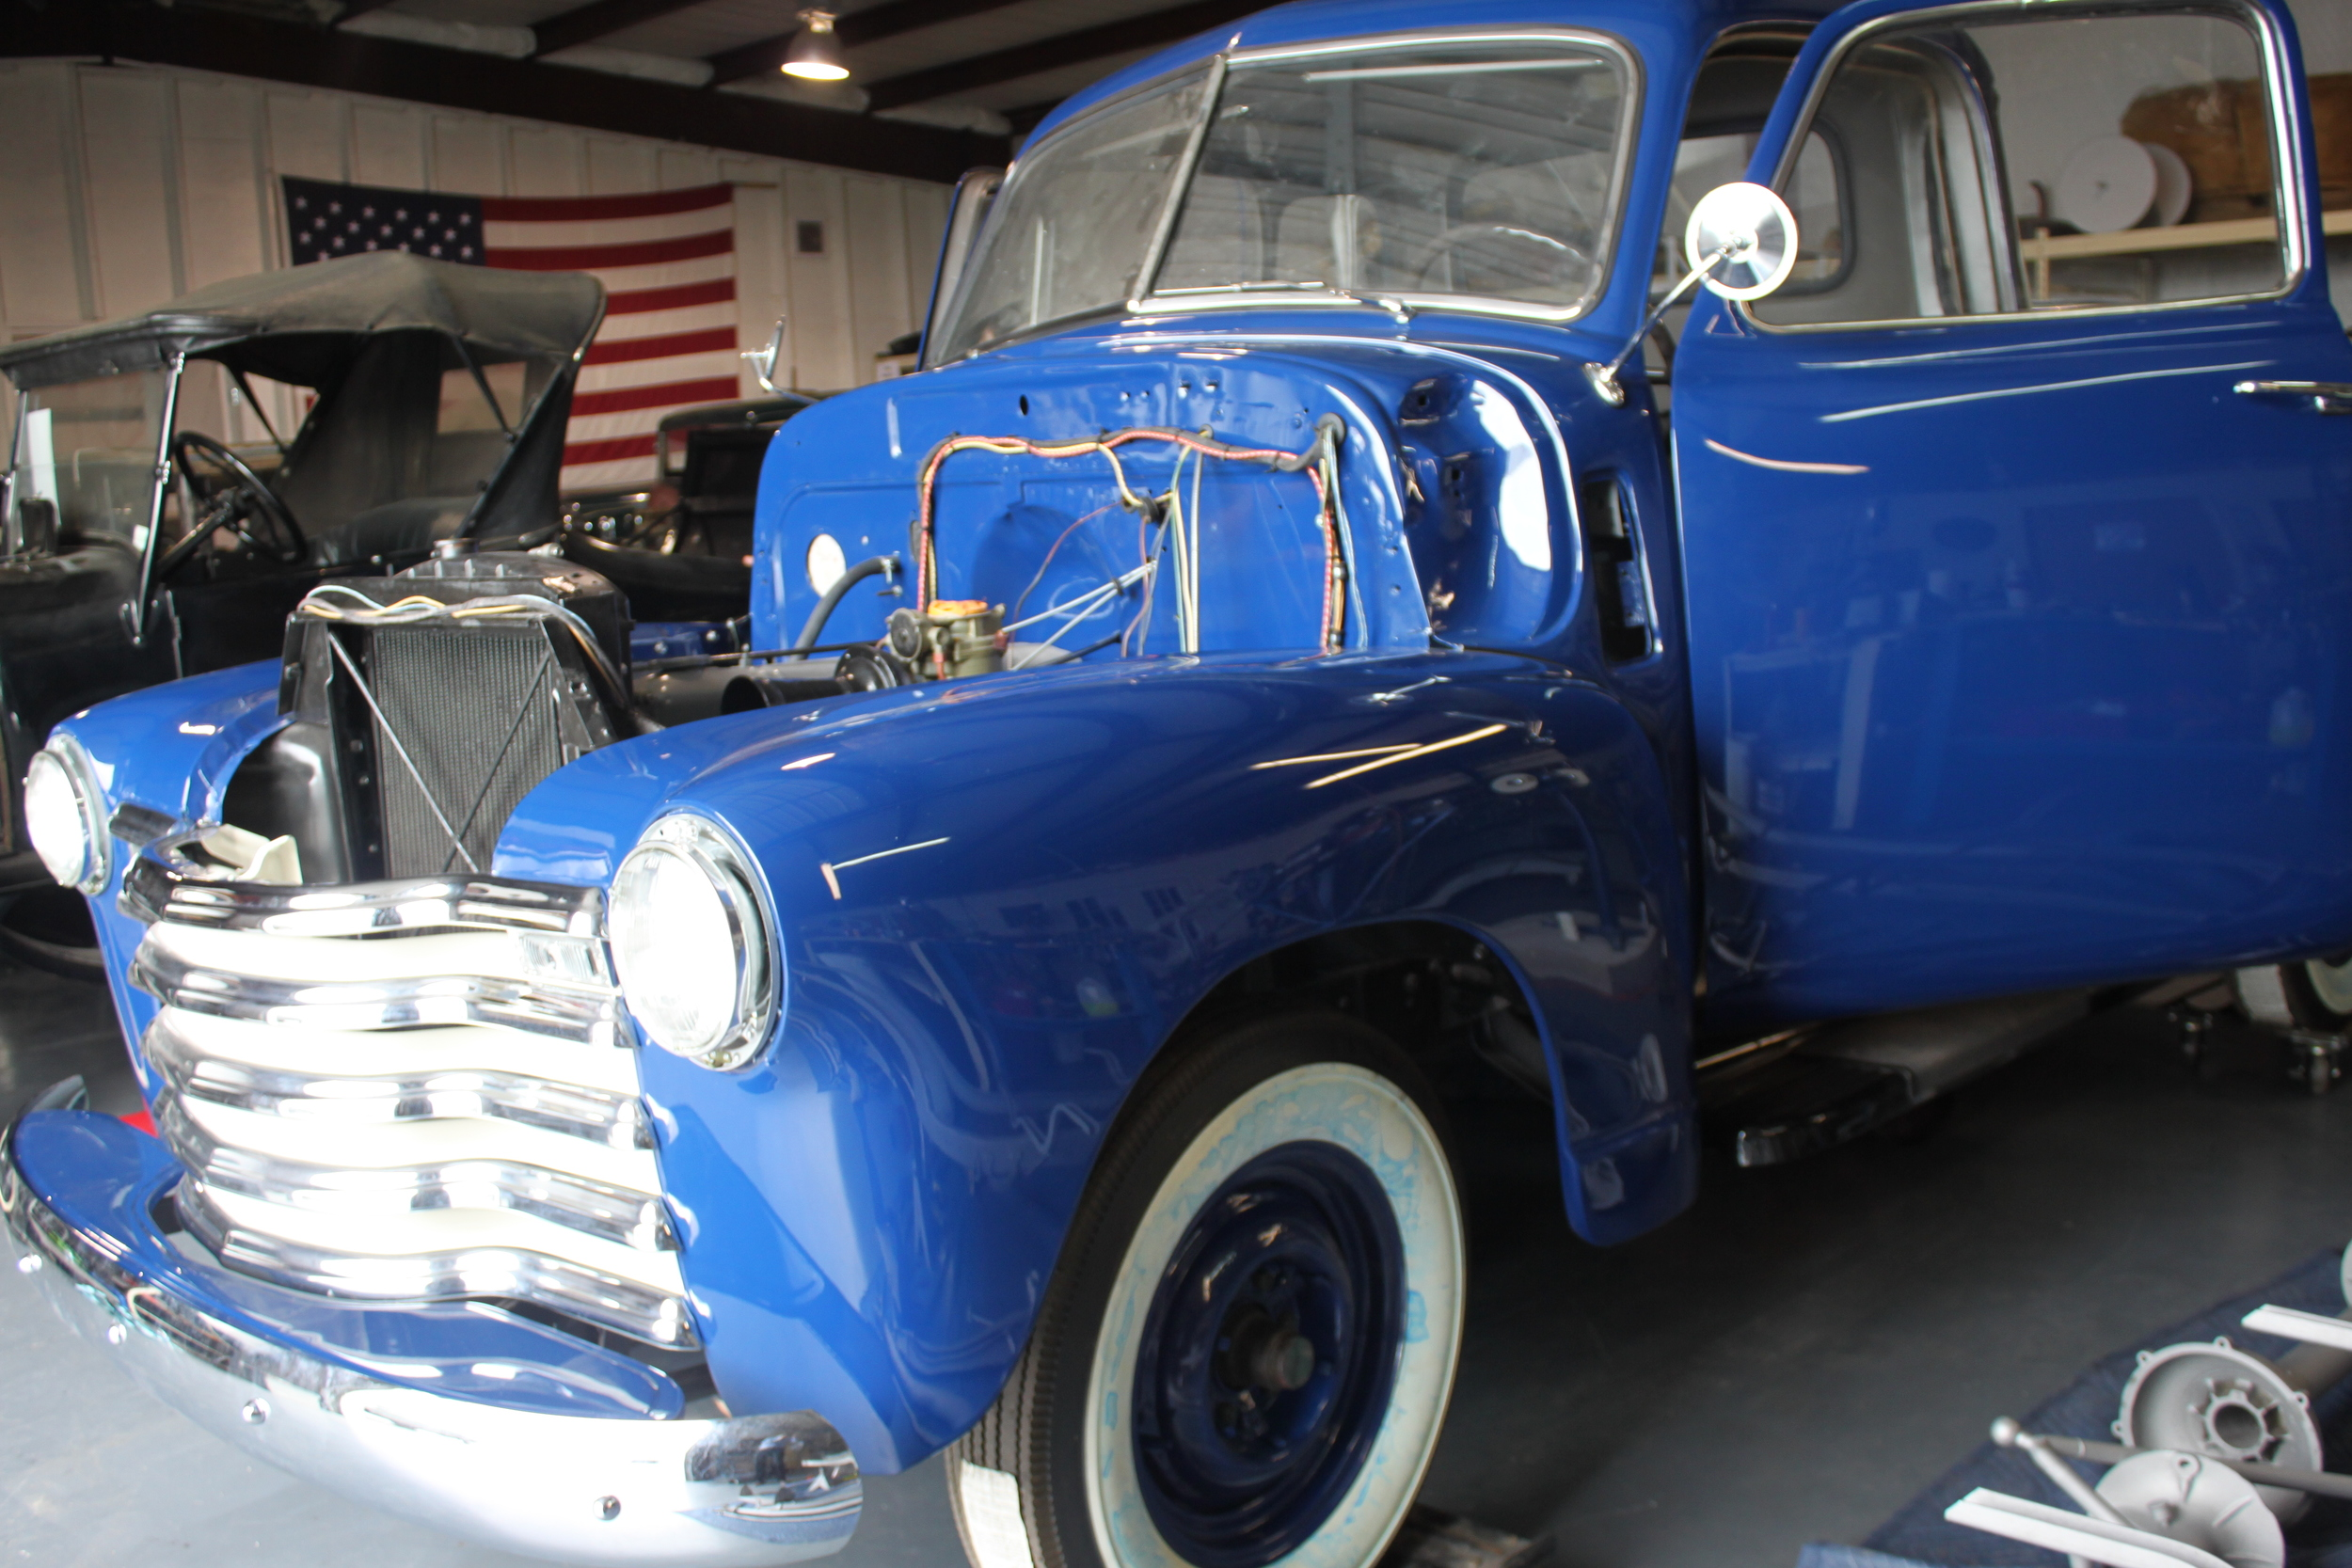 The 1949 Chevrolet Pickup.